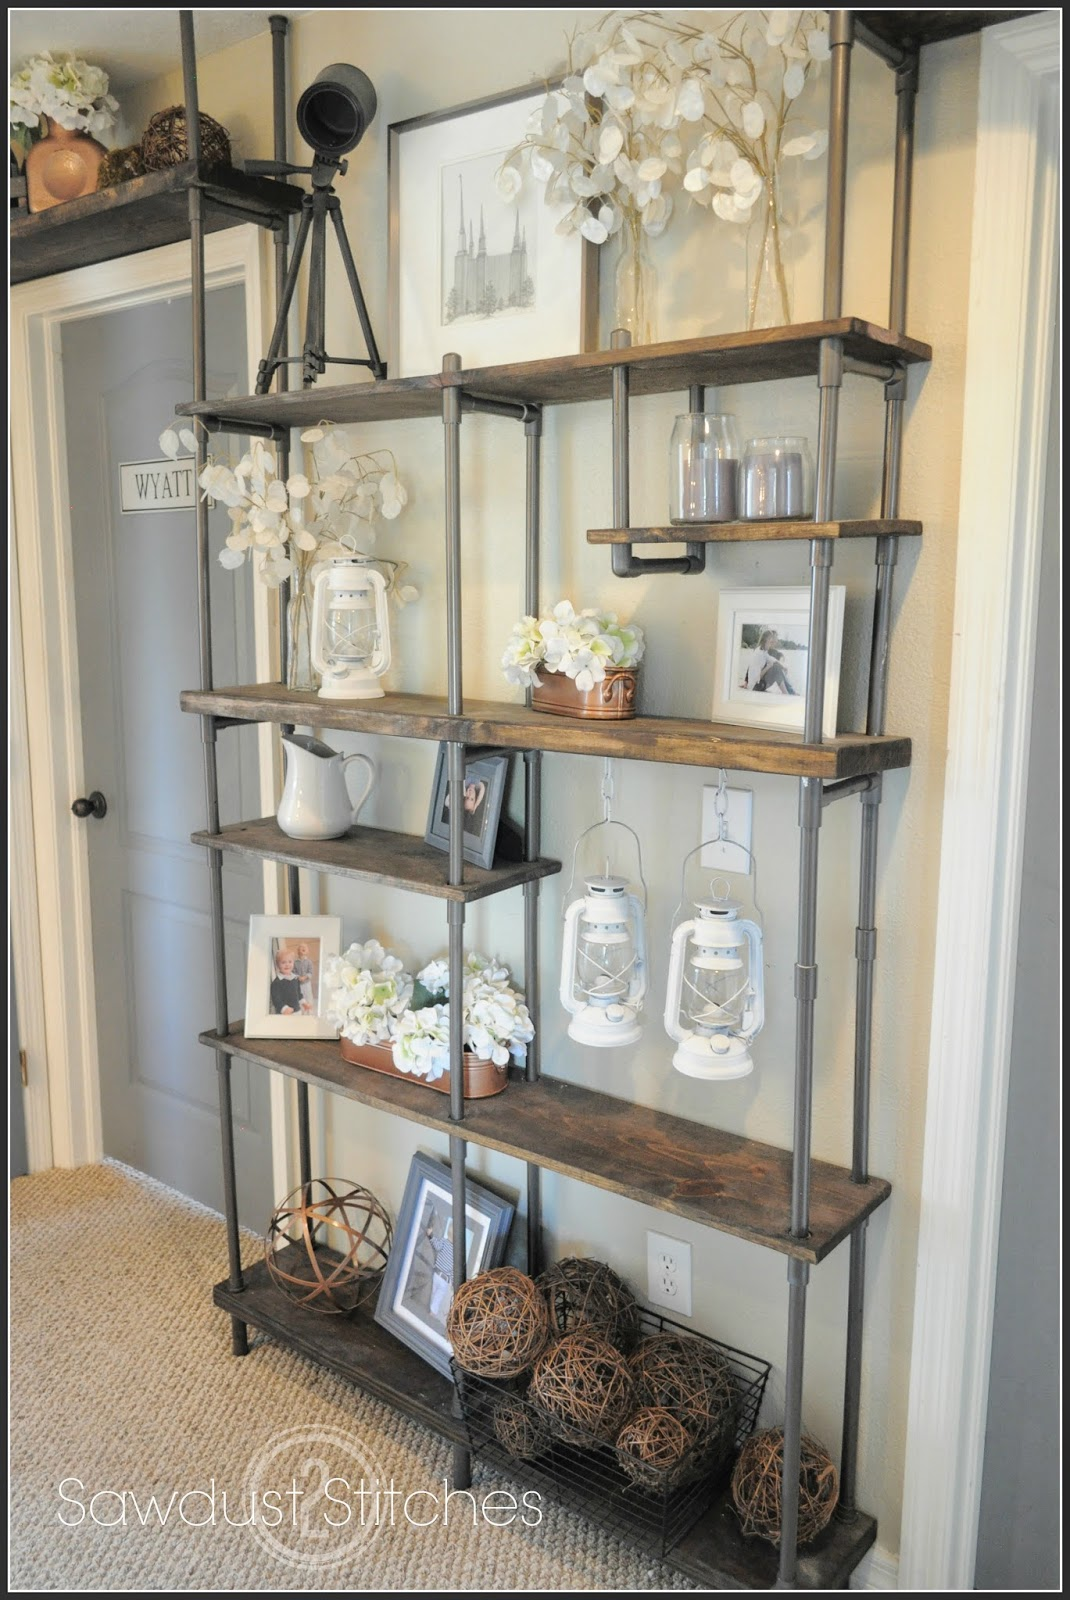 Remodelaholic Build A Budget Friendly Industrial Shelf Using PVC Pipe